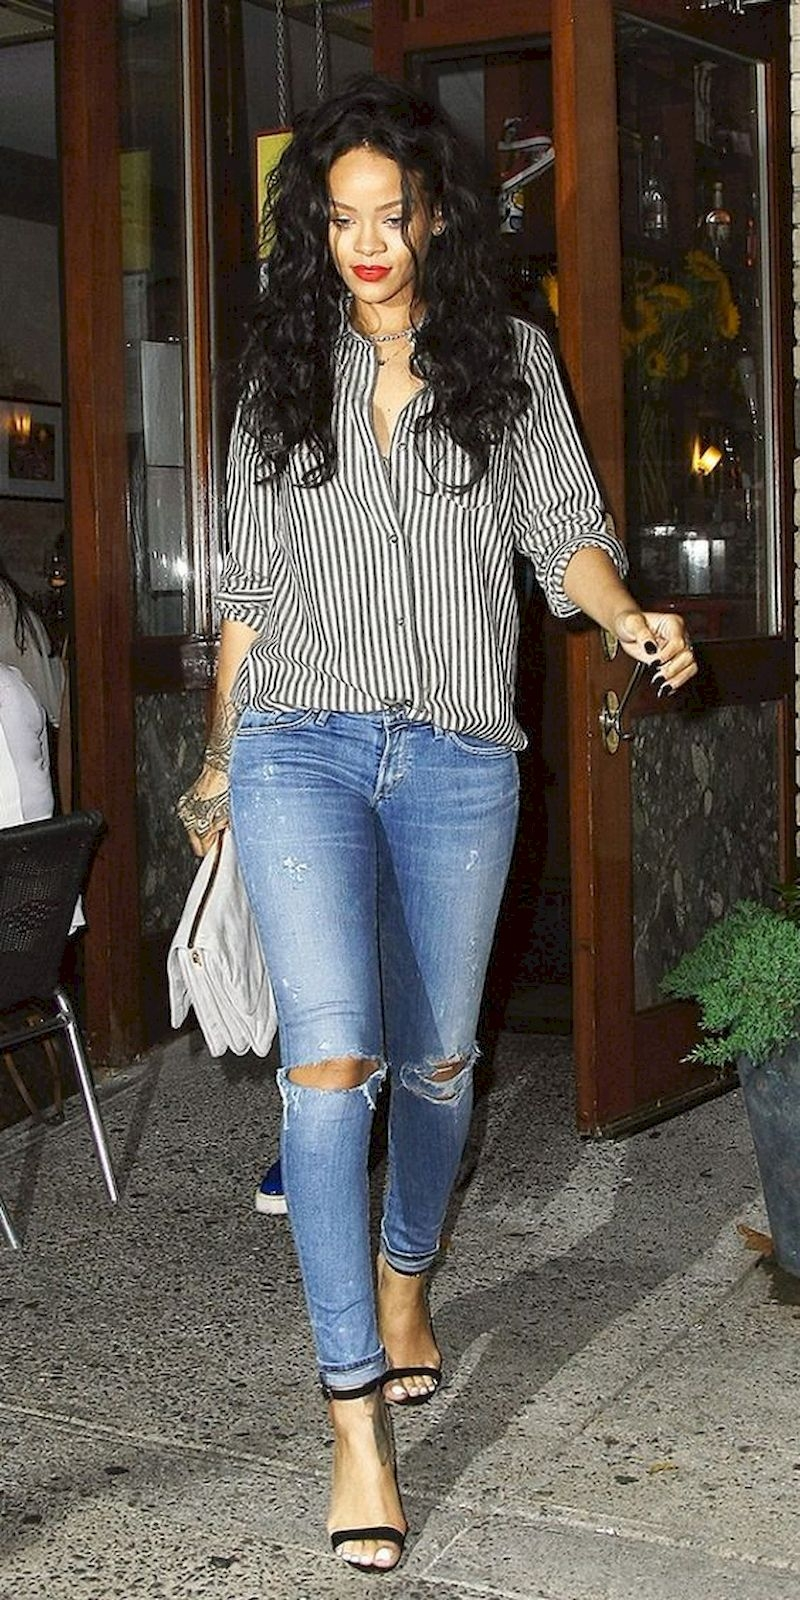 Casual clothes rihanna with striped shirts and high heels